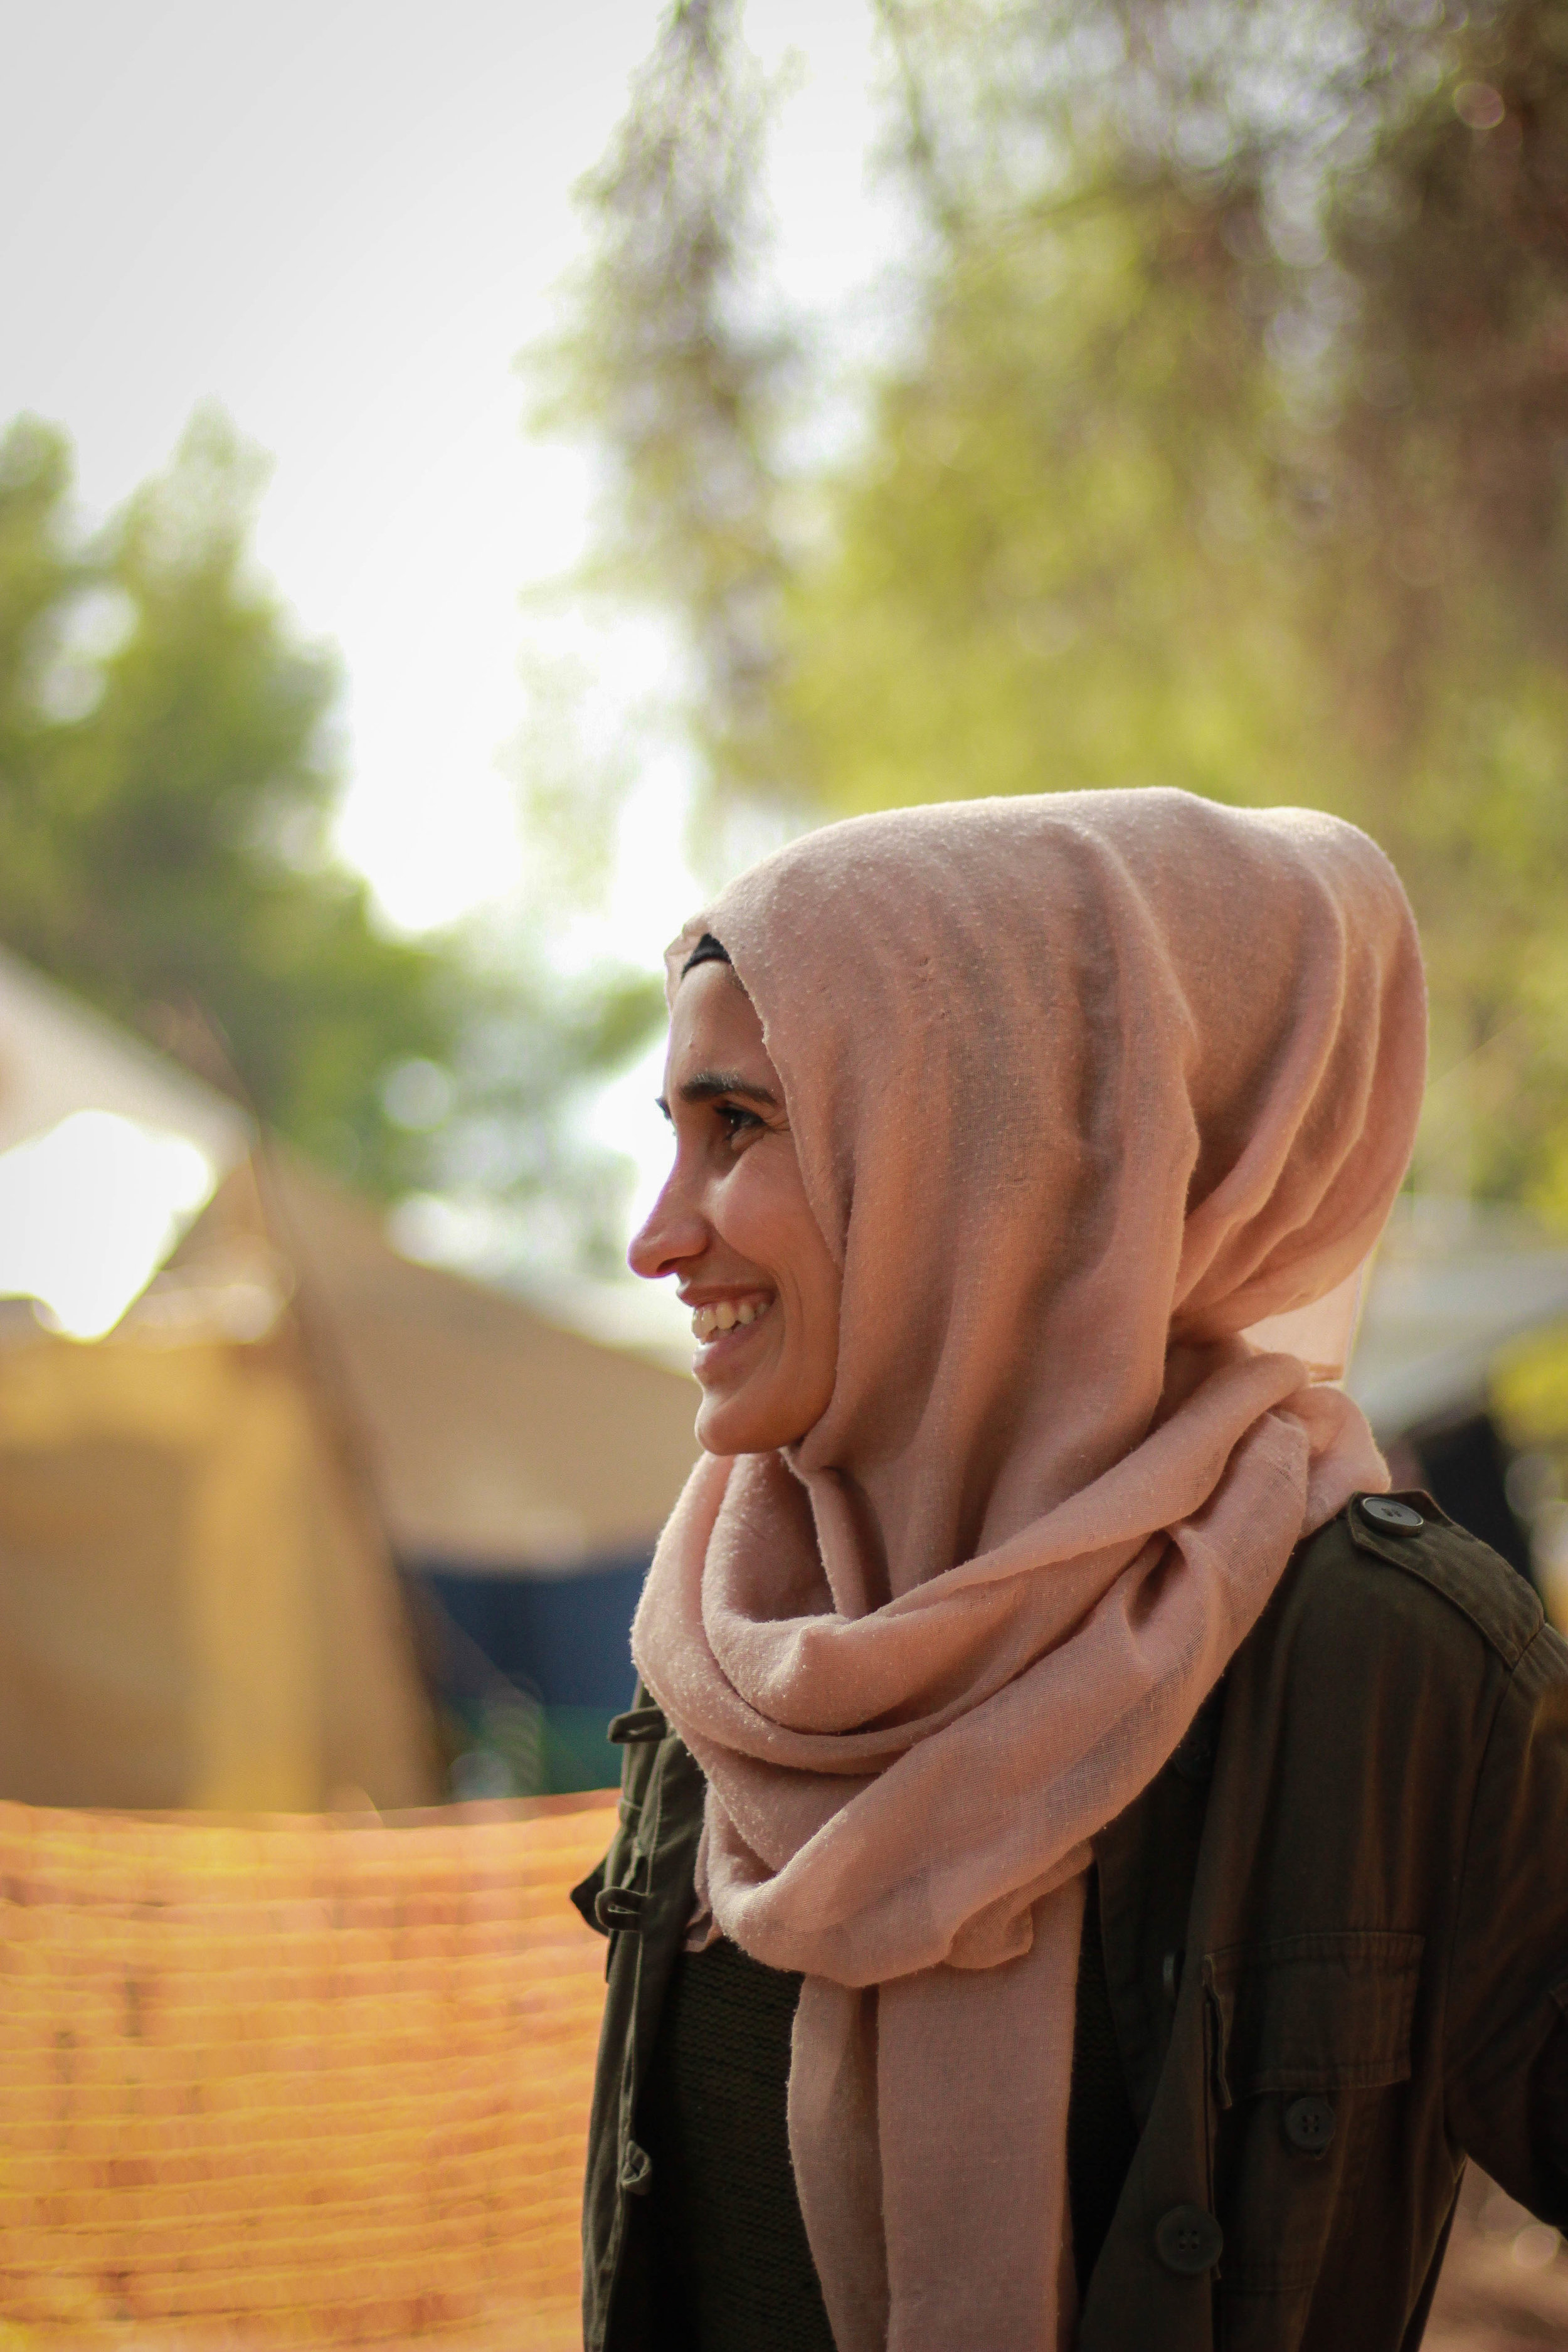 """Siba, 20 years old from Qamishli, Syria / Photo: Shayanne Gal   """"The Border"""" by Siba Alsaker  """"Dream: If I want to do something, I will do it. I want to complete my studies, therefore I will complete my studies. I will do everything as I want to, and follow how I feel. No one can take away my dream, and the border is not my dream. My dream is to see these refugee children with a future, a safe life, able to go back to Syria and live a normal life like before - but thanks to Europe for making me a stronger person. My dream is infinite."""""""